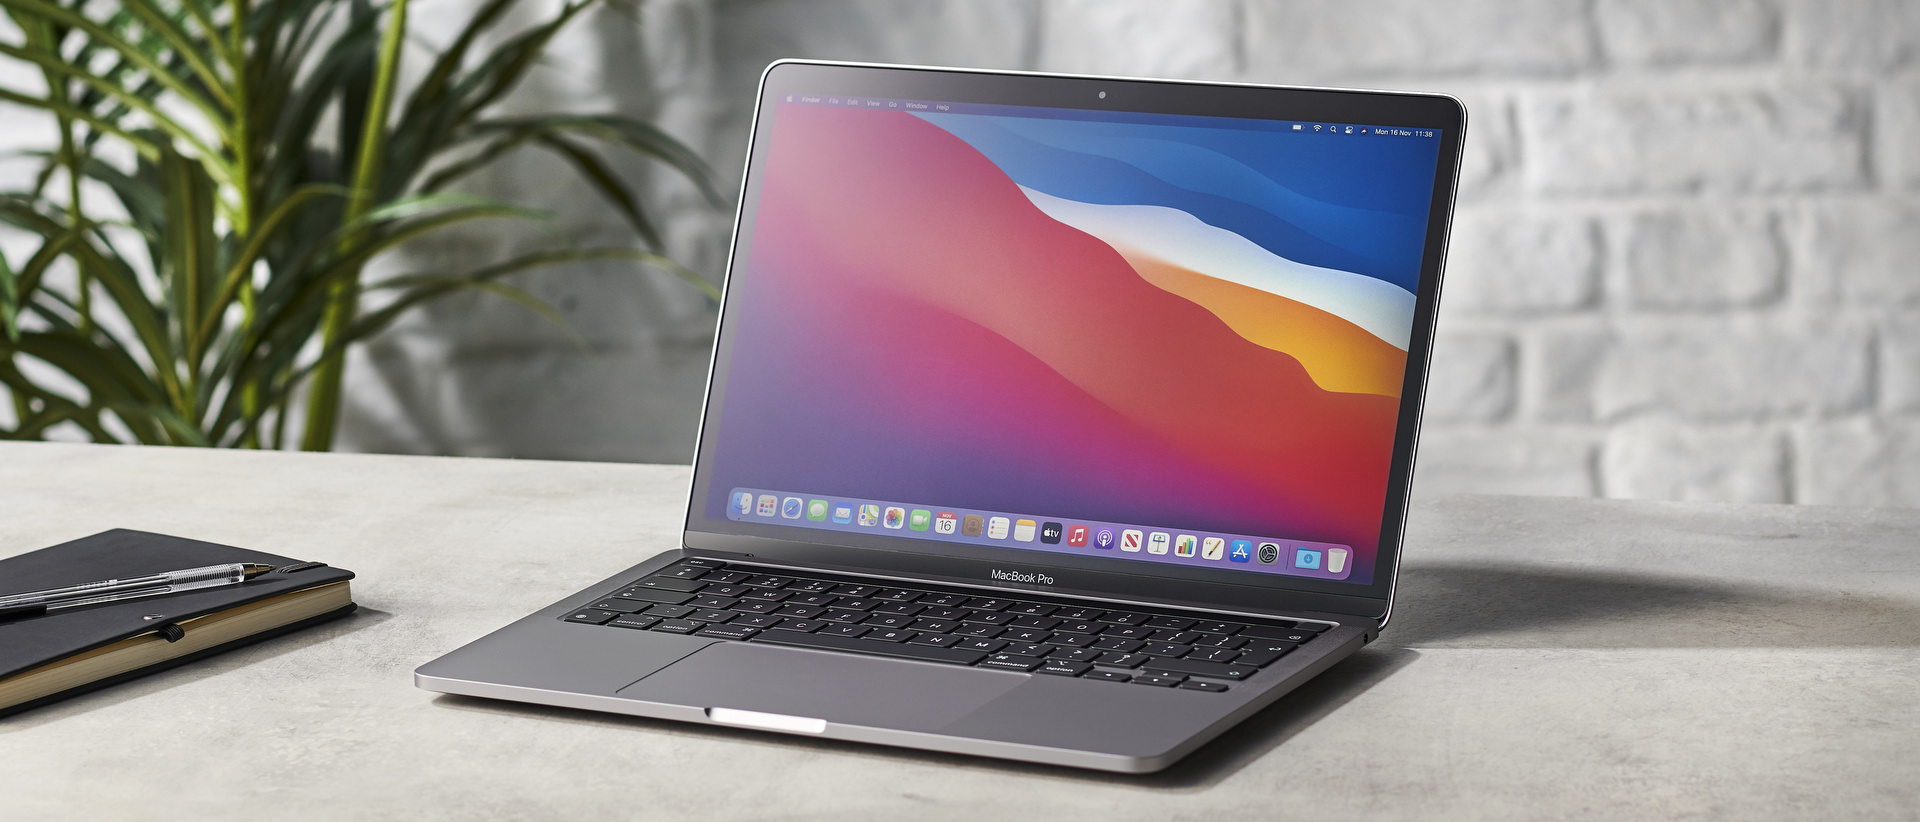 9 Best Apps and Software for MacBook that Can Boost Its Performance